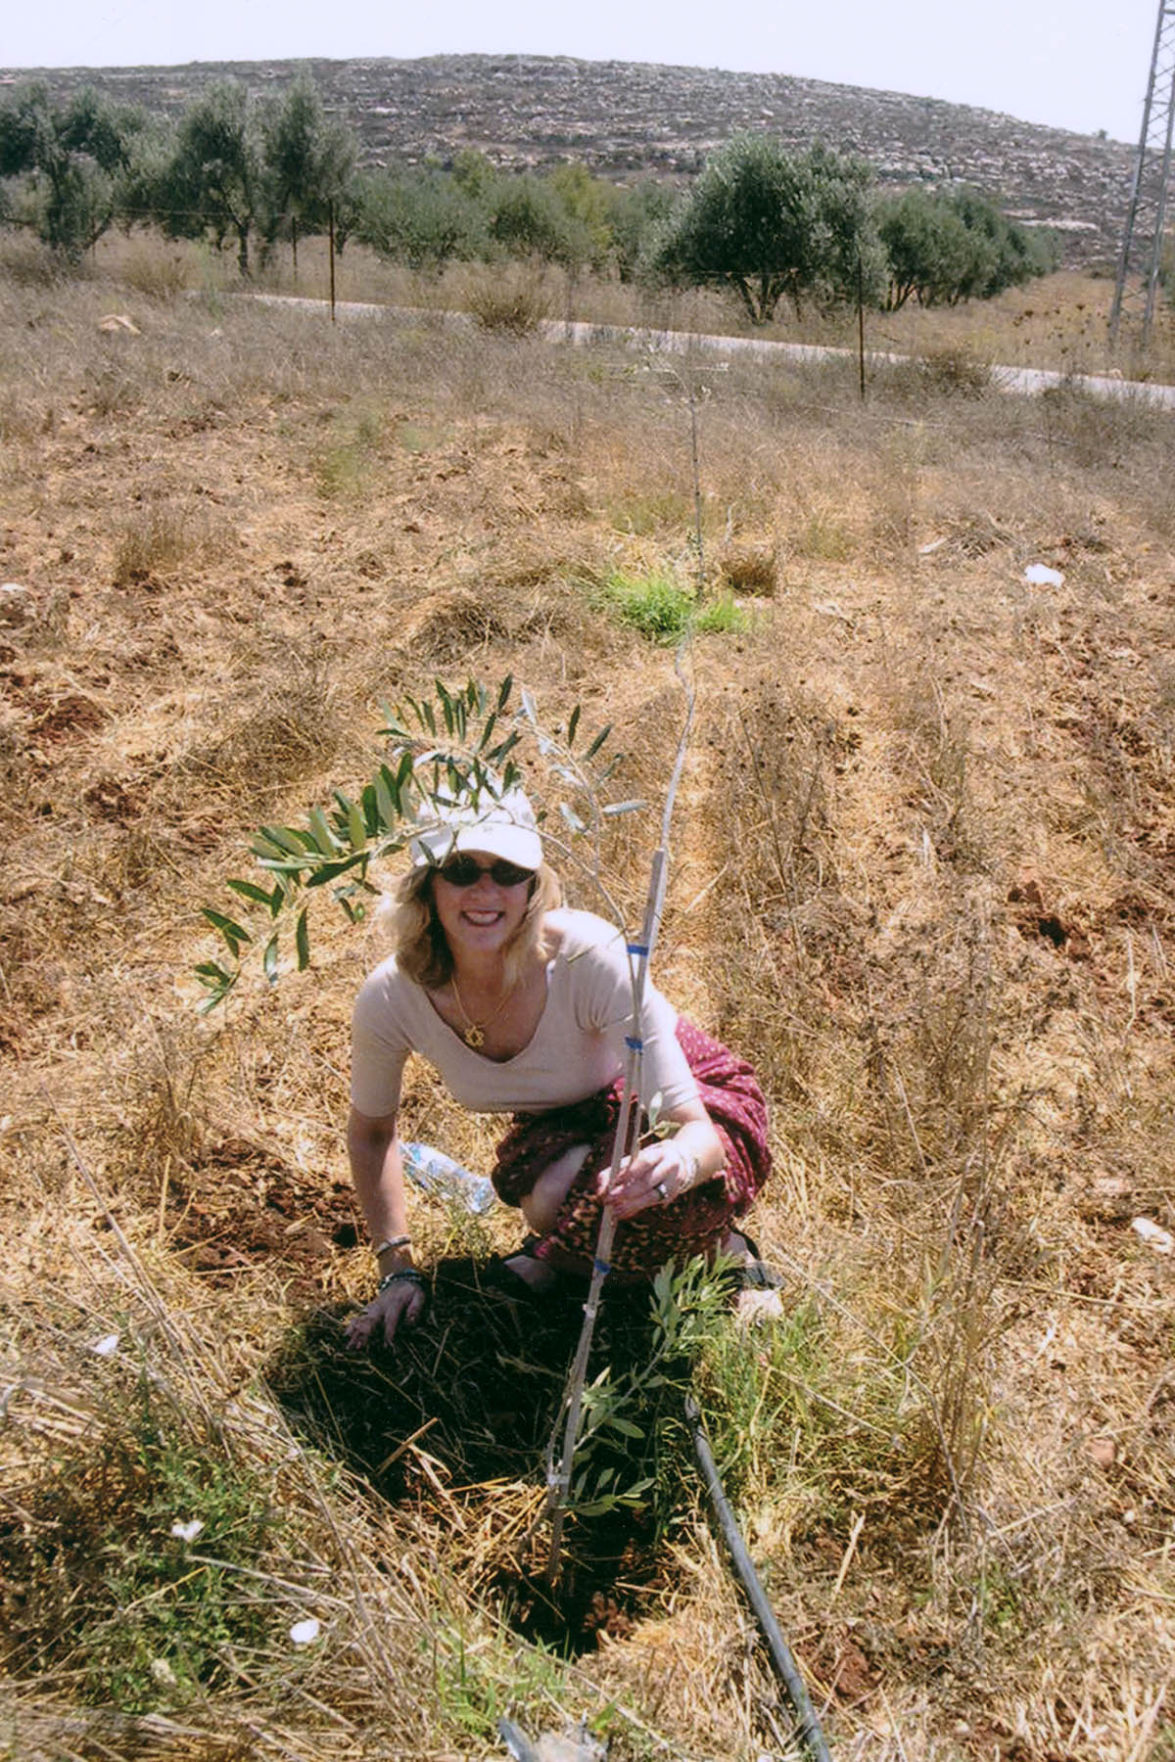 Late Woman S Dream Is Realized On Nonprofit Farm Tucson